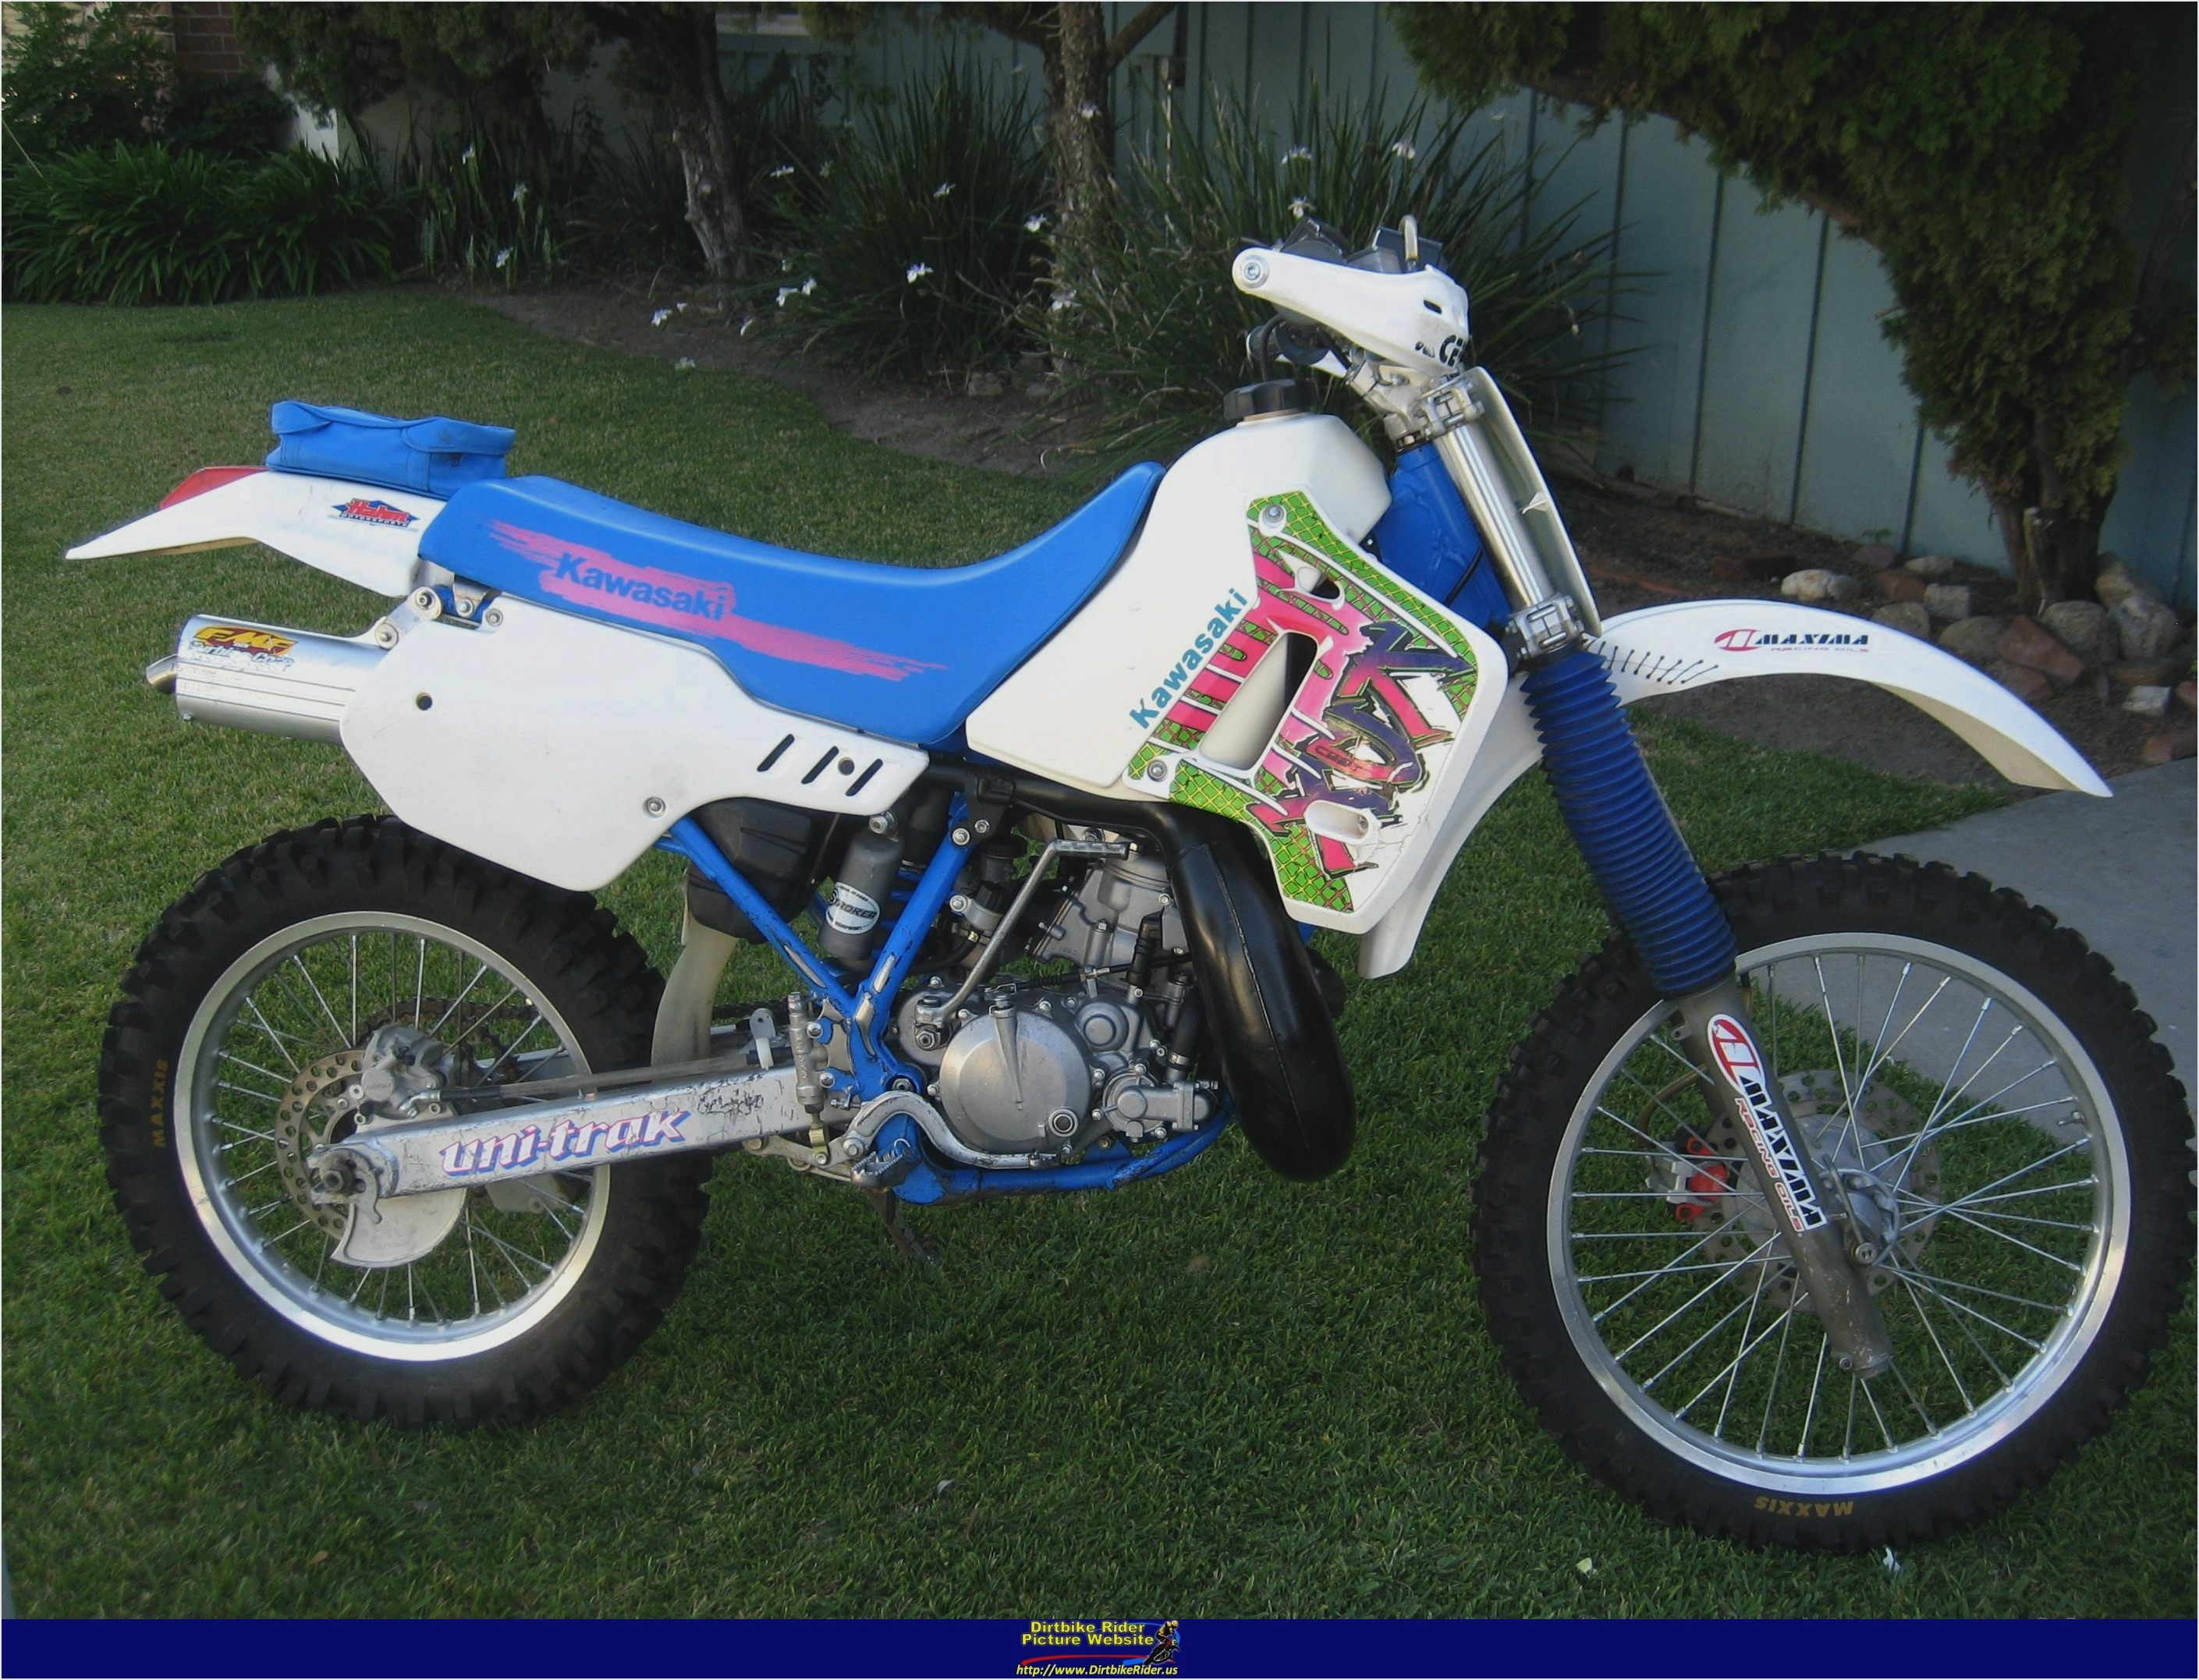 1996 Kdx 200 Wiring Diagram | Wiring Diagram Roketa Cc Atv Wiring Diagram on roketa 50cc scooter wiring diagram, roketa 50cc atv tires, roketa 250cc atv wiring diagram, roketa dirt bikes wiring diagram, roketa 50cc atv engine,